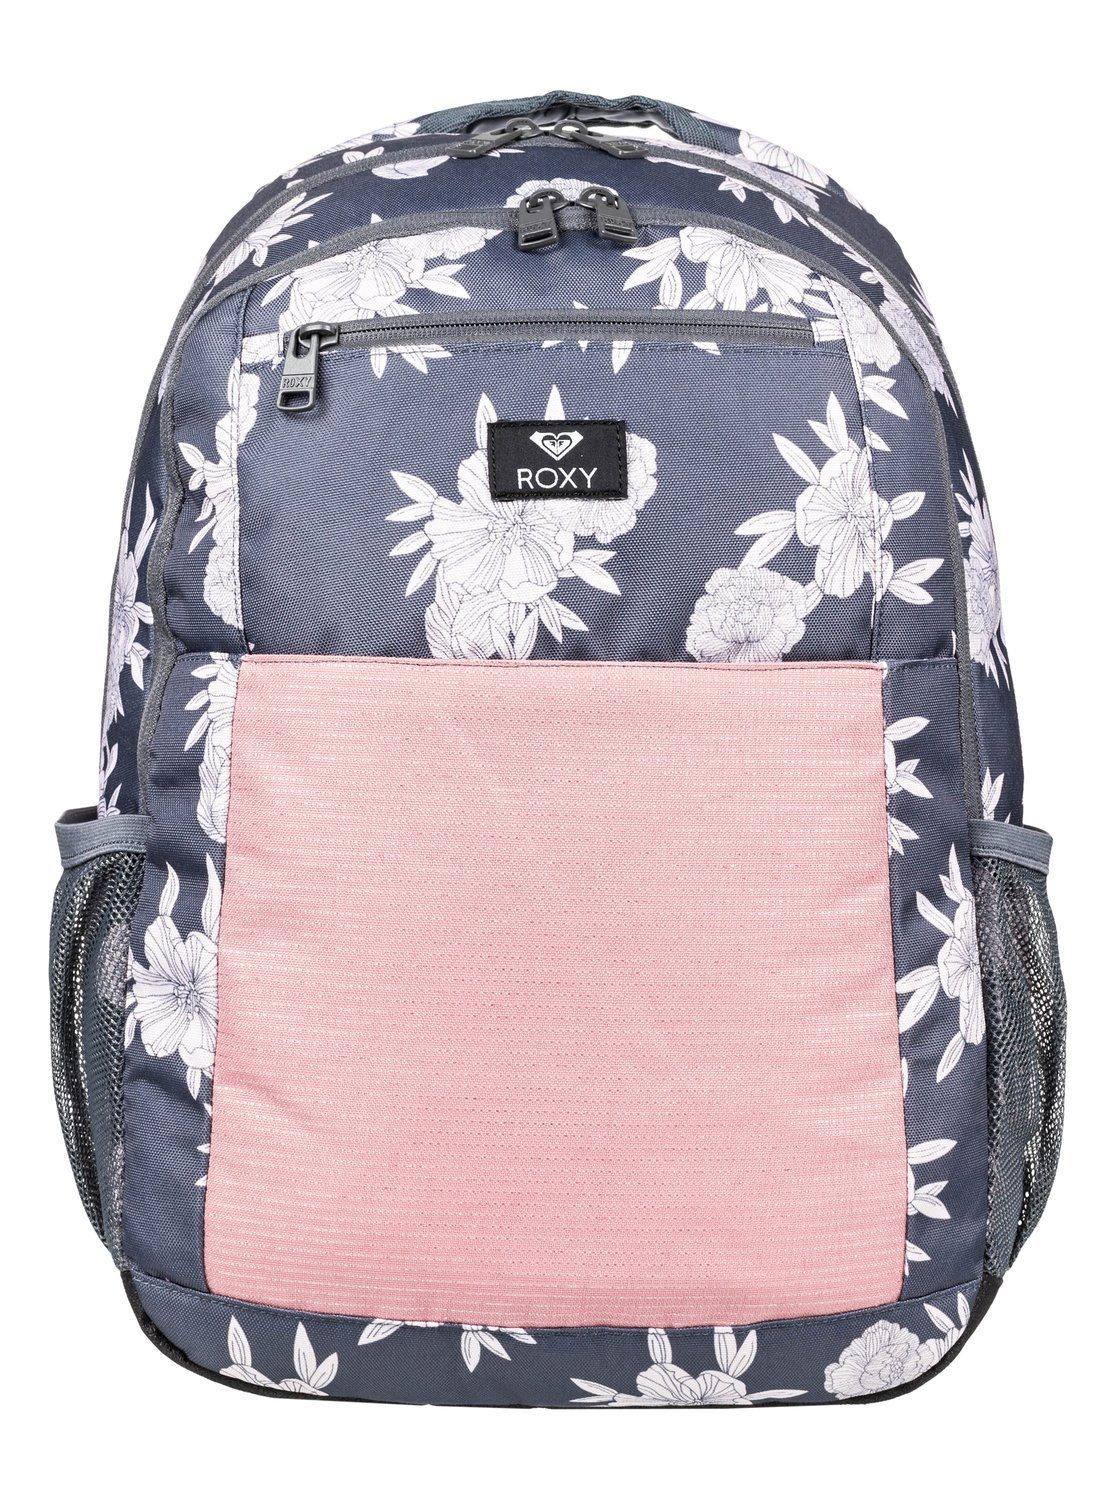 Roxy Tagesrucksack »Here You Are Mix 23.5L«